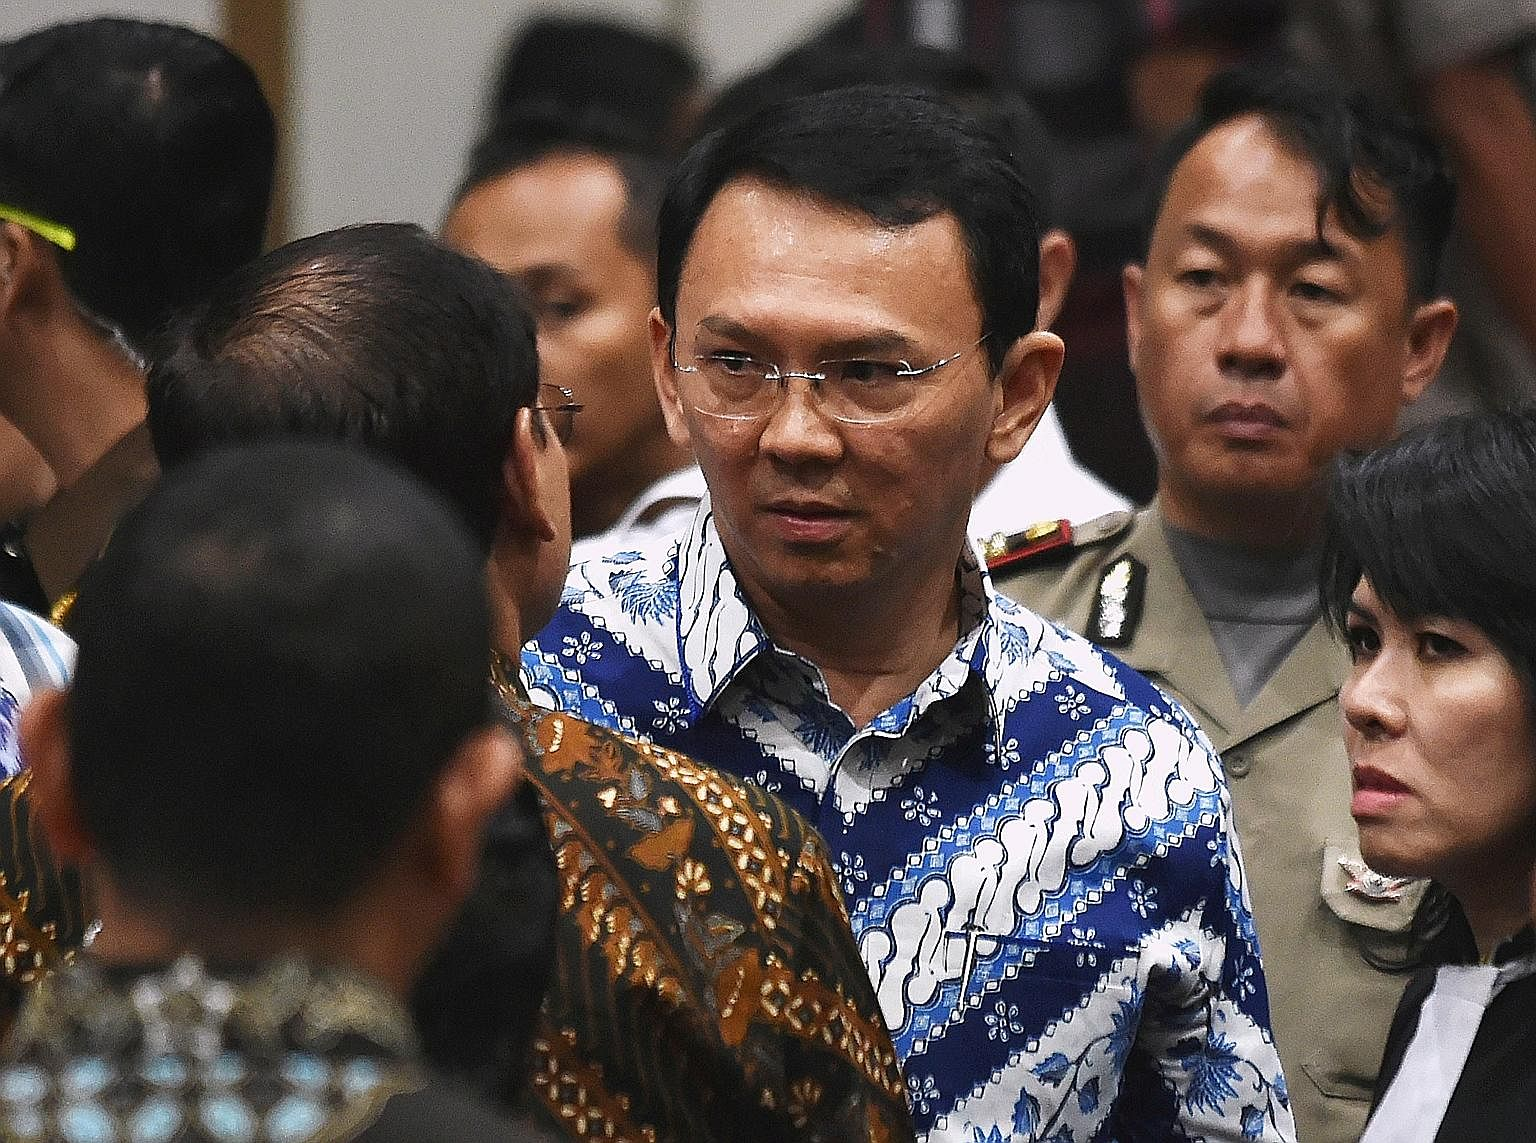 Former Jakarta governor Basuki Tjahaja Purnama, popularly known as Ahok, could benefit from a generational shift among Indonesian voters should he decide on a political comeback.